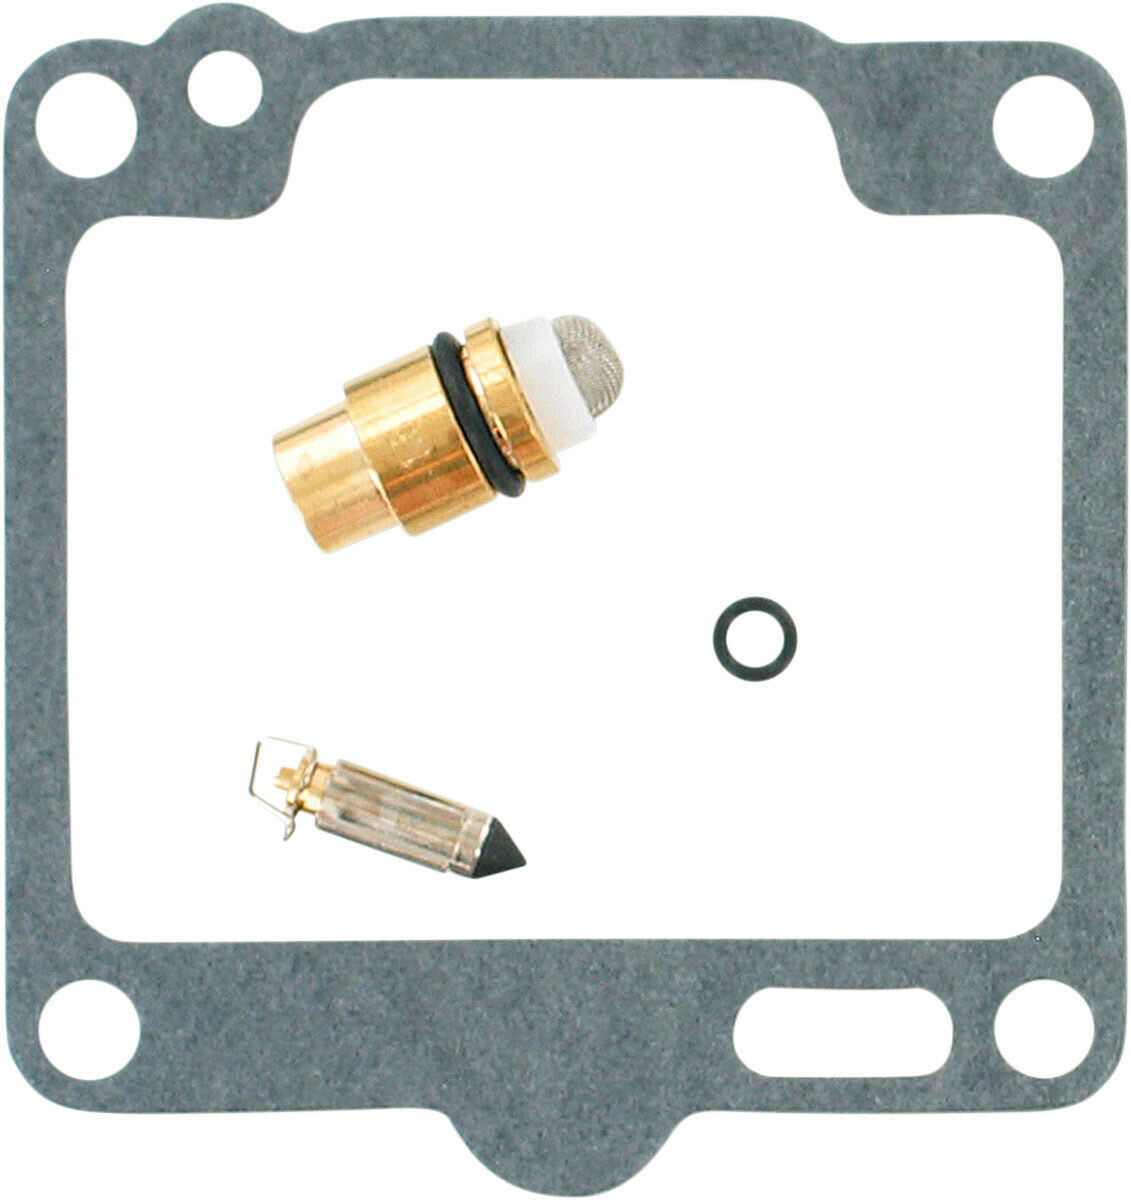 Yamaha 1991-97 Carburetor Repair Kit - K&L 18-5185